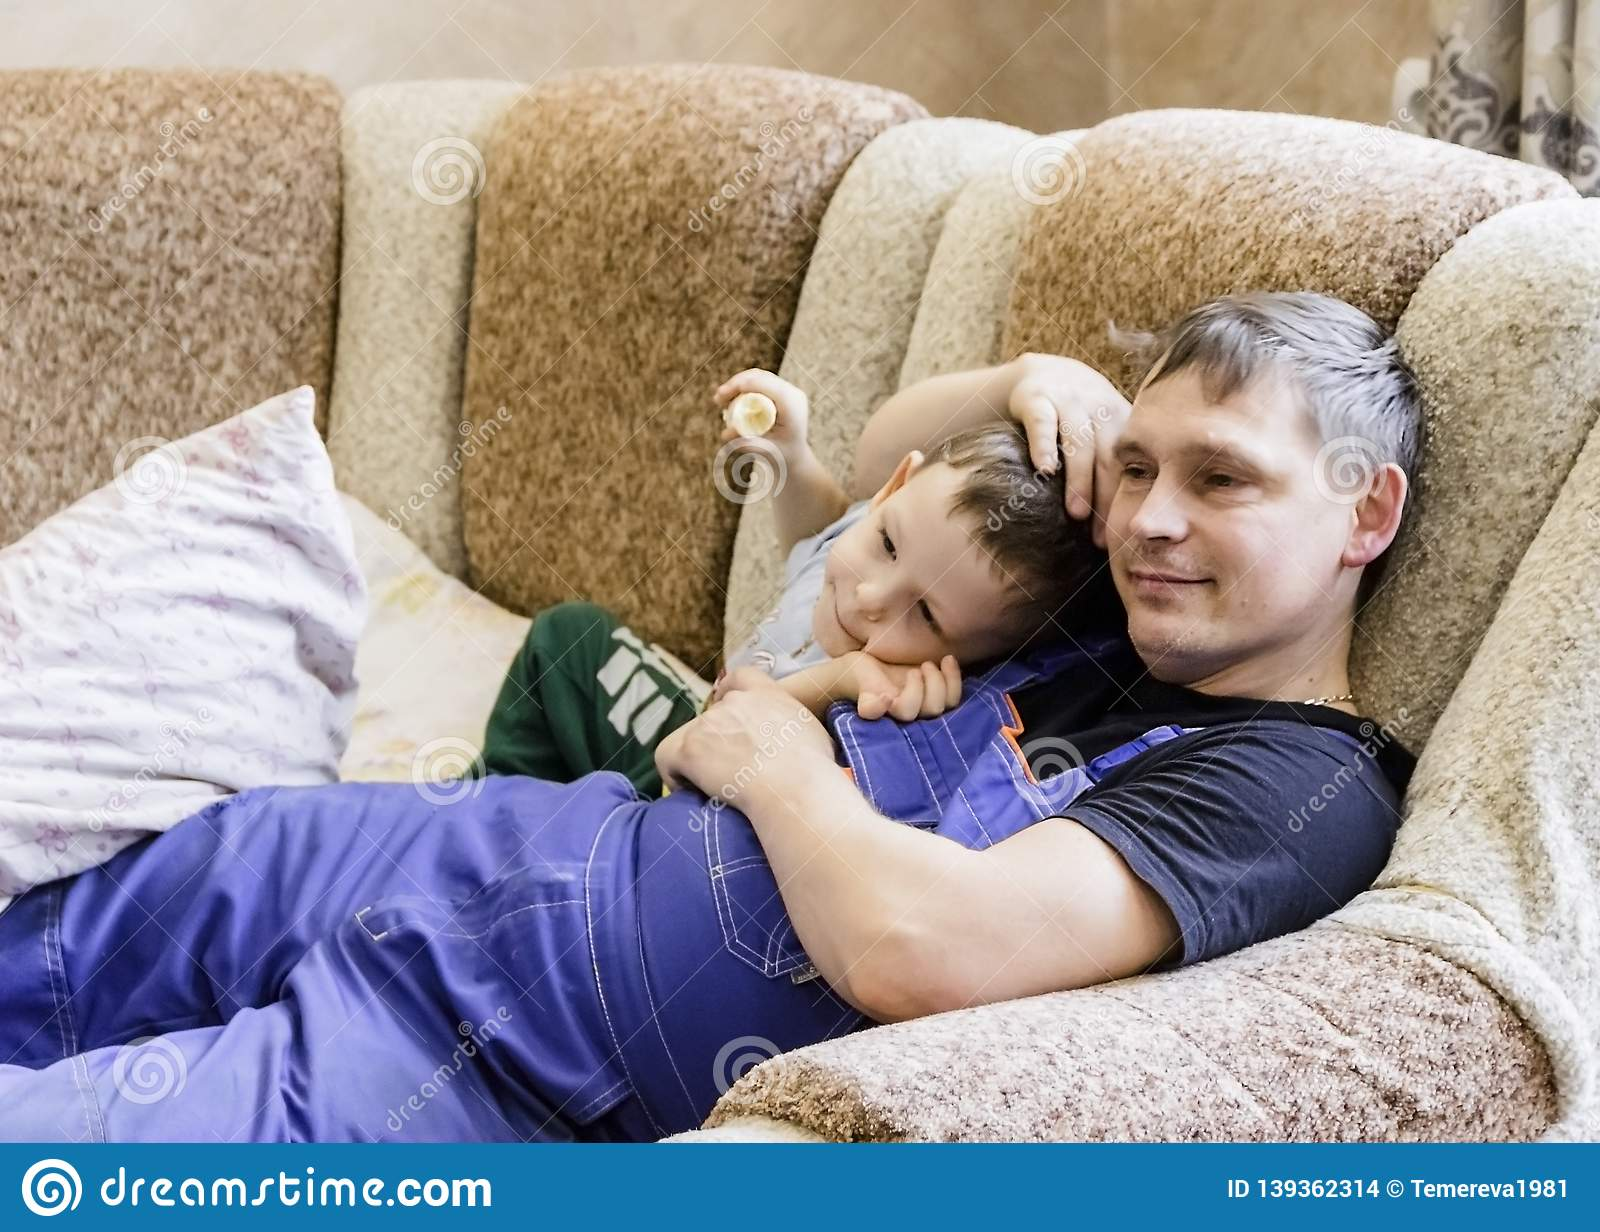 Pictured in the photo dad and son are lying on the couch